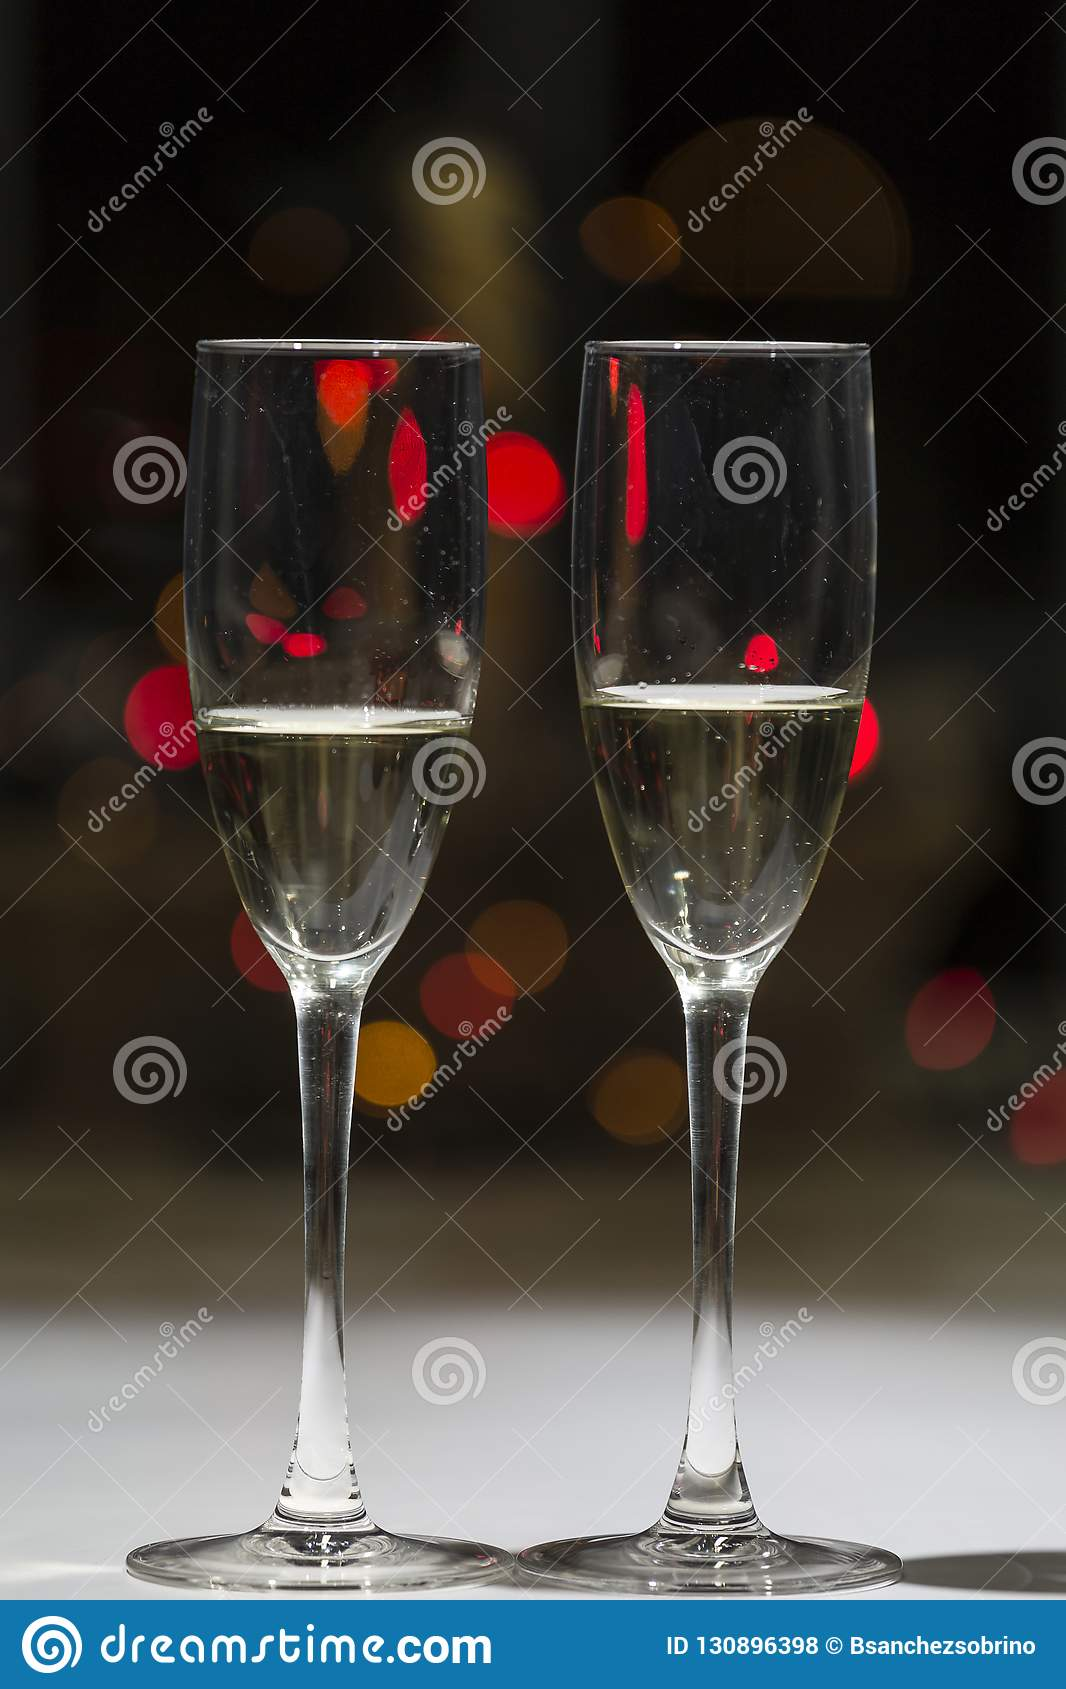 Glasses of champagne, in the background points of color